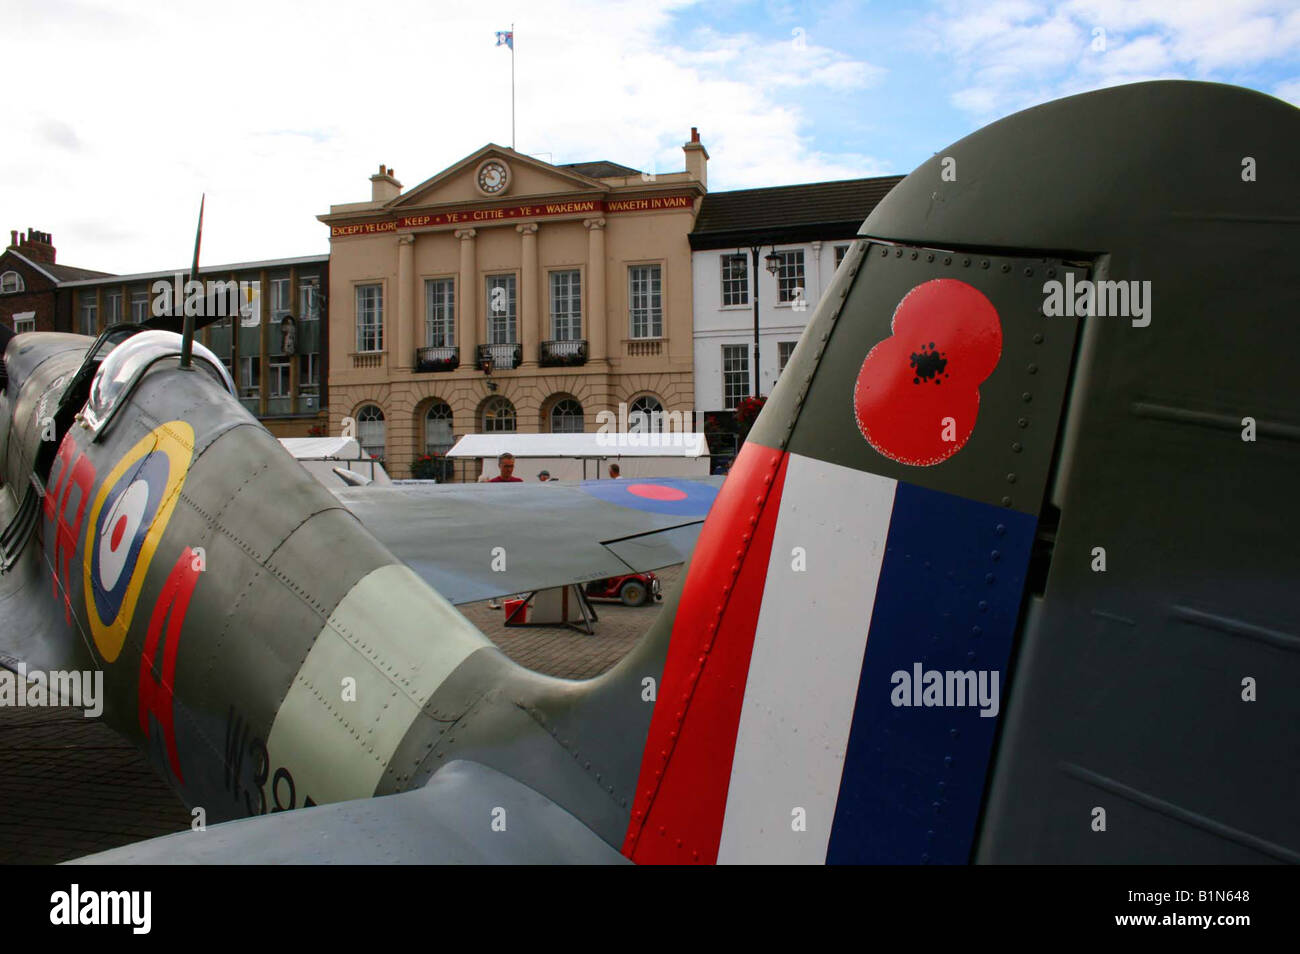 replica of WW2 Supermarine Spitfire displayed at Ripon market place in North Yorkshire England UK - Stock Image